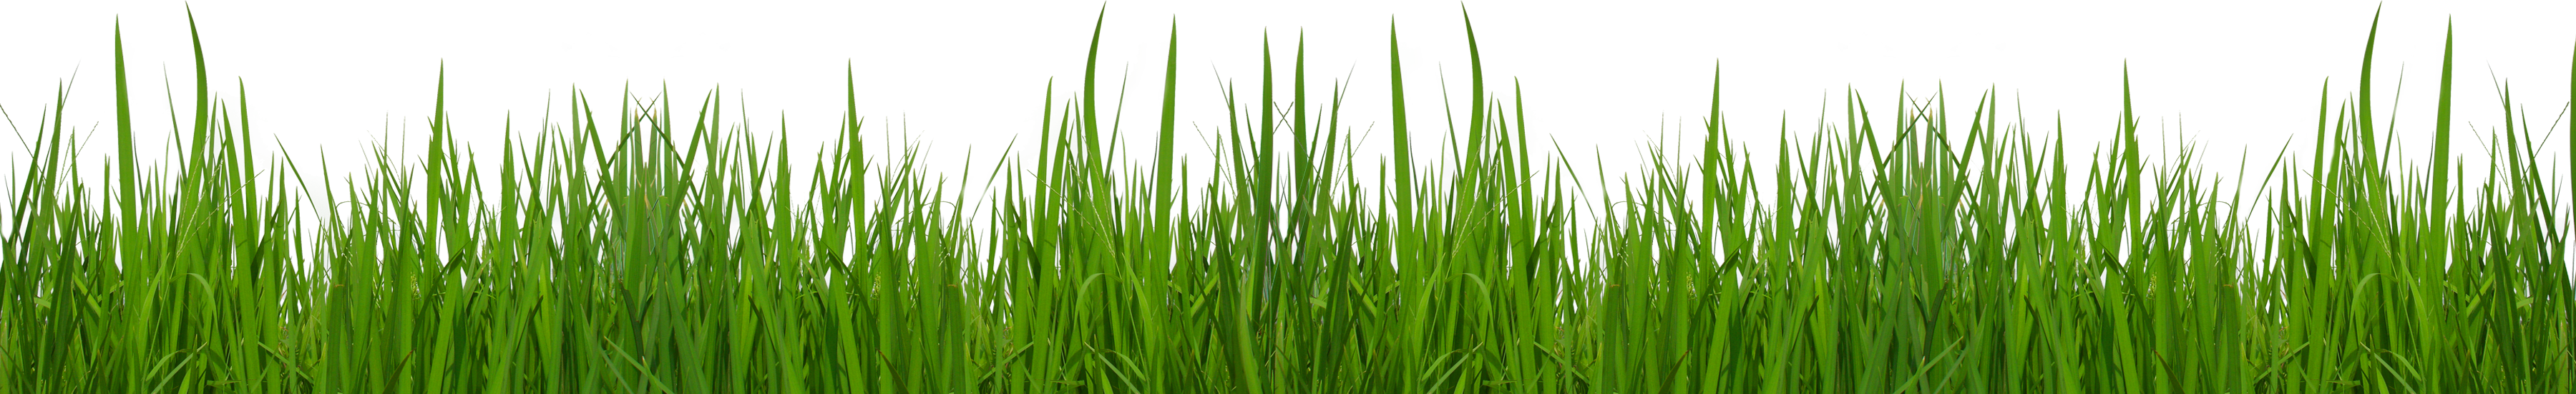 Free Free Grass Cliparts, Download Free Clip Art, Free Clip.